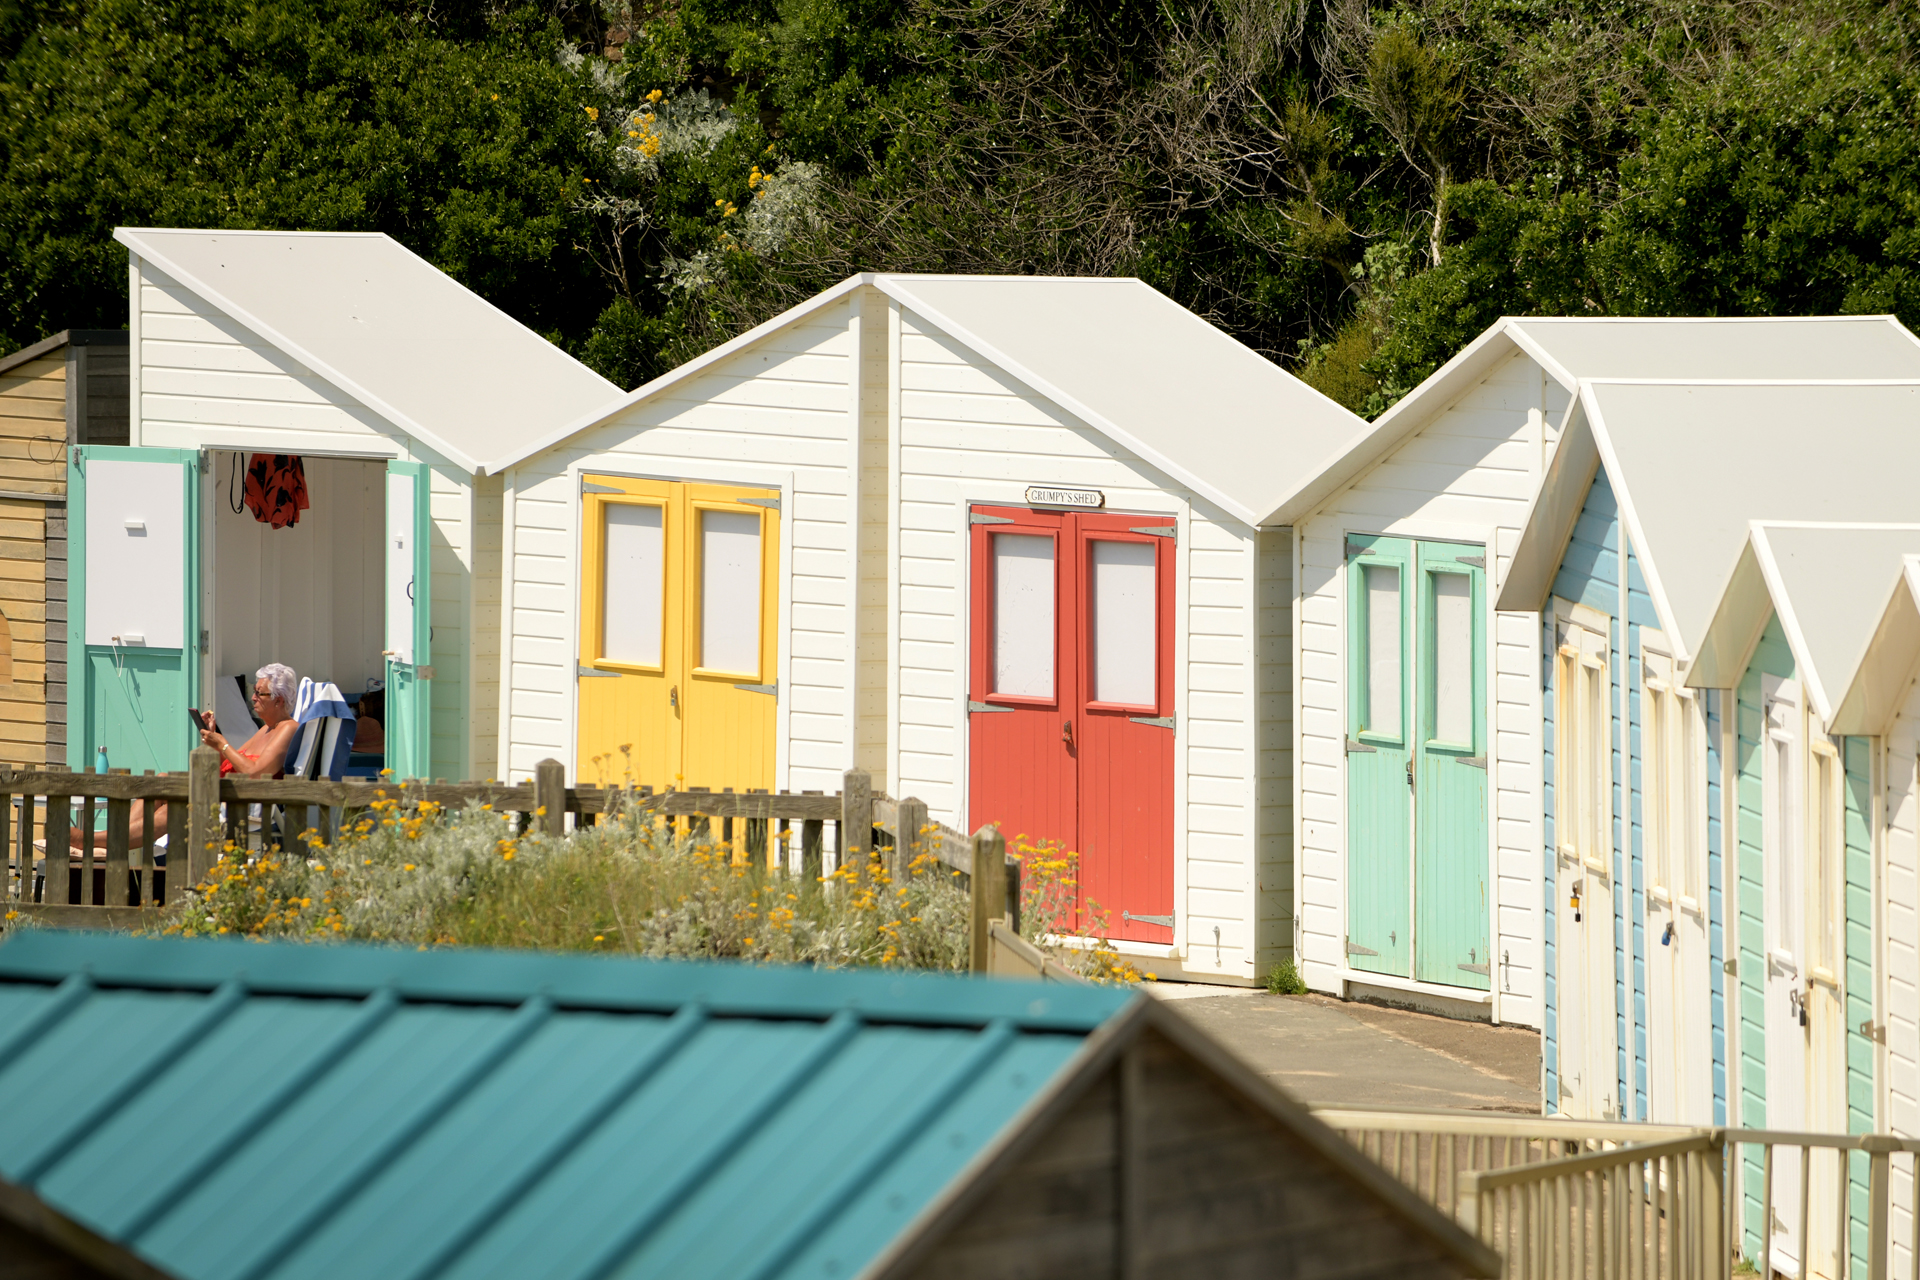 Colourful beach huts for hire at Summerleaze beach in Bude, north Cornwallc